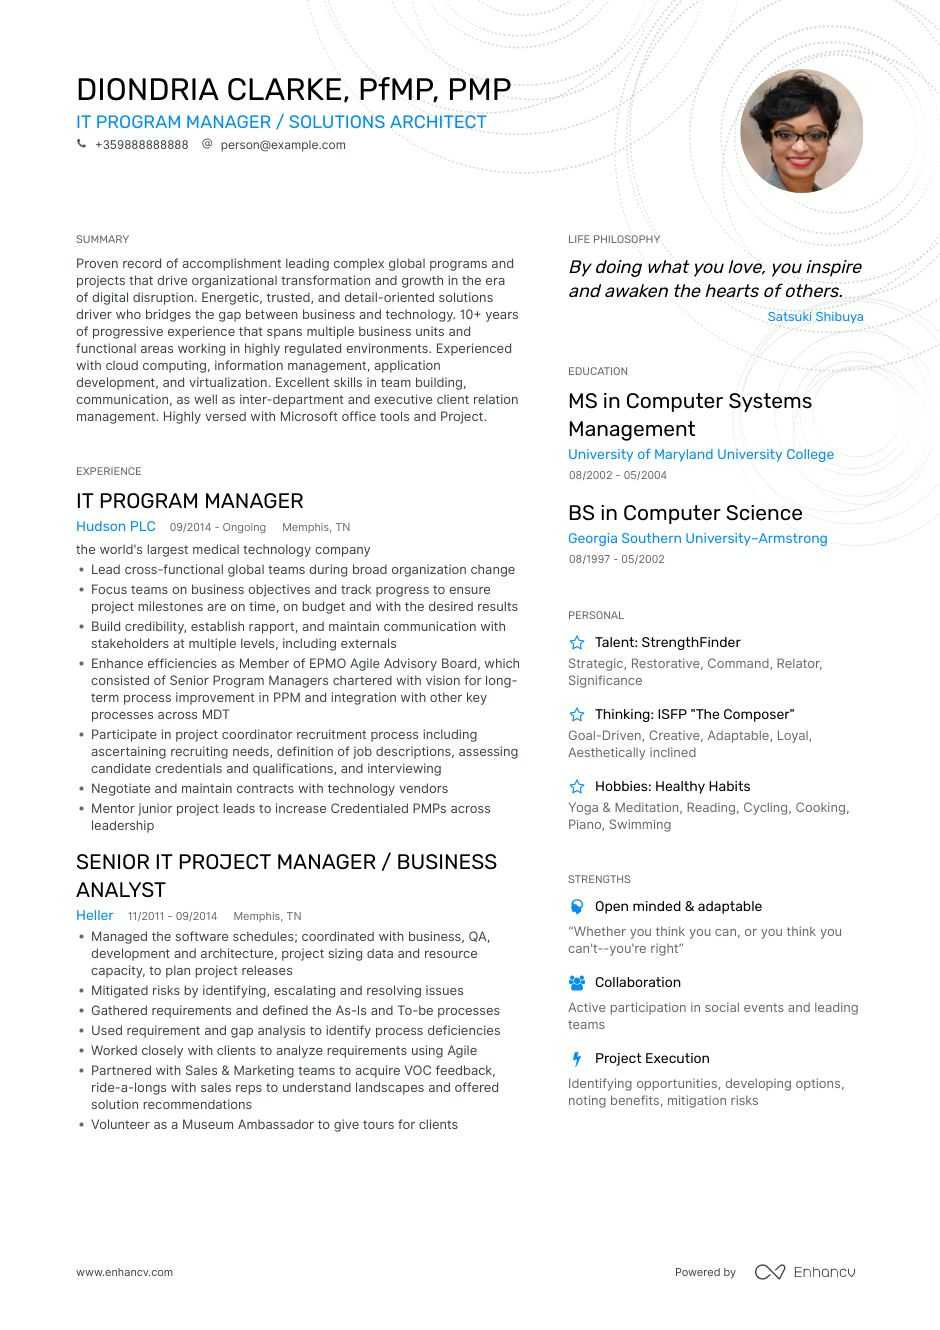 Program Manager Resume Examples Guide Amp Pro Tips Enhancv